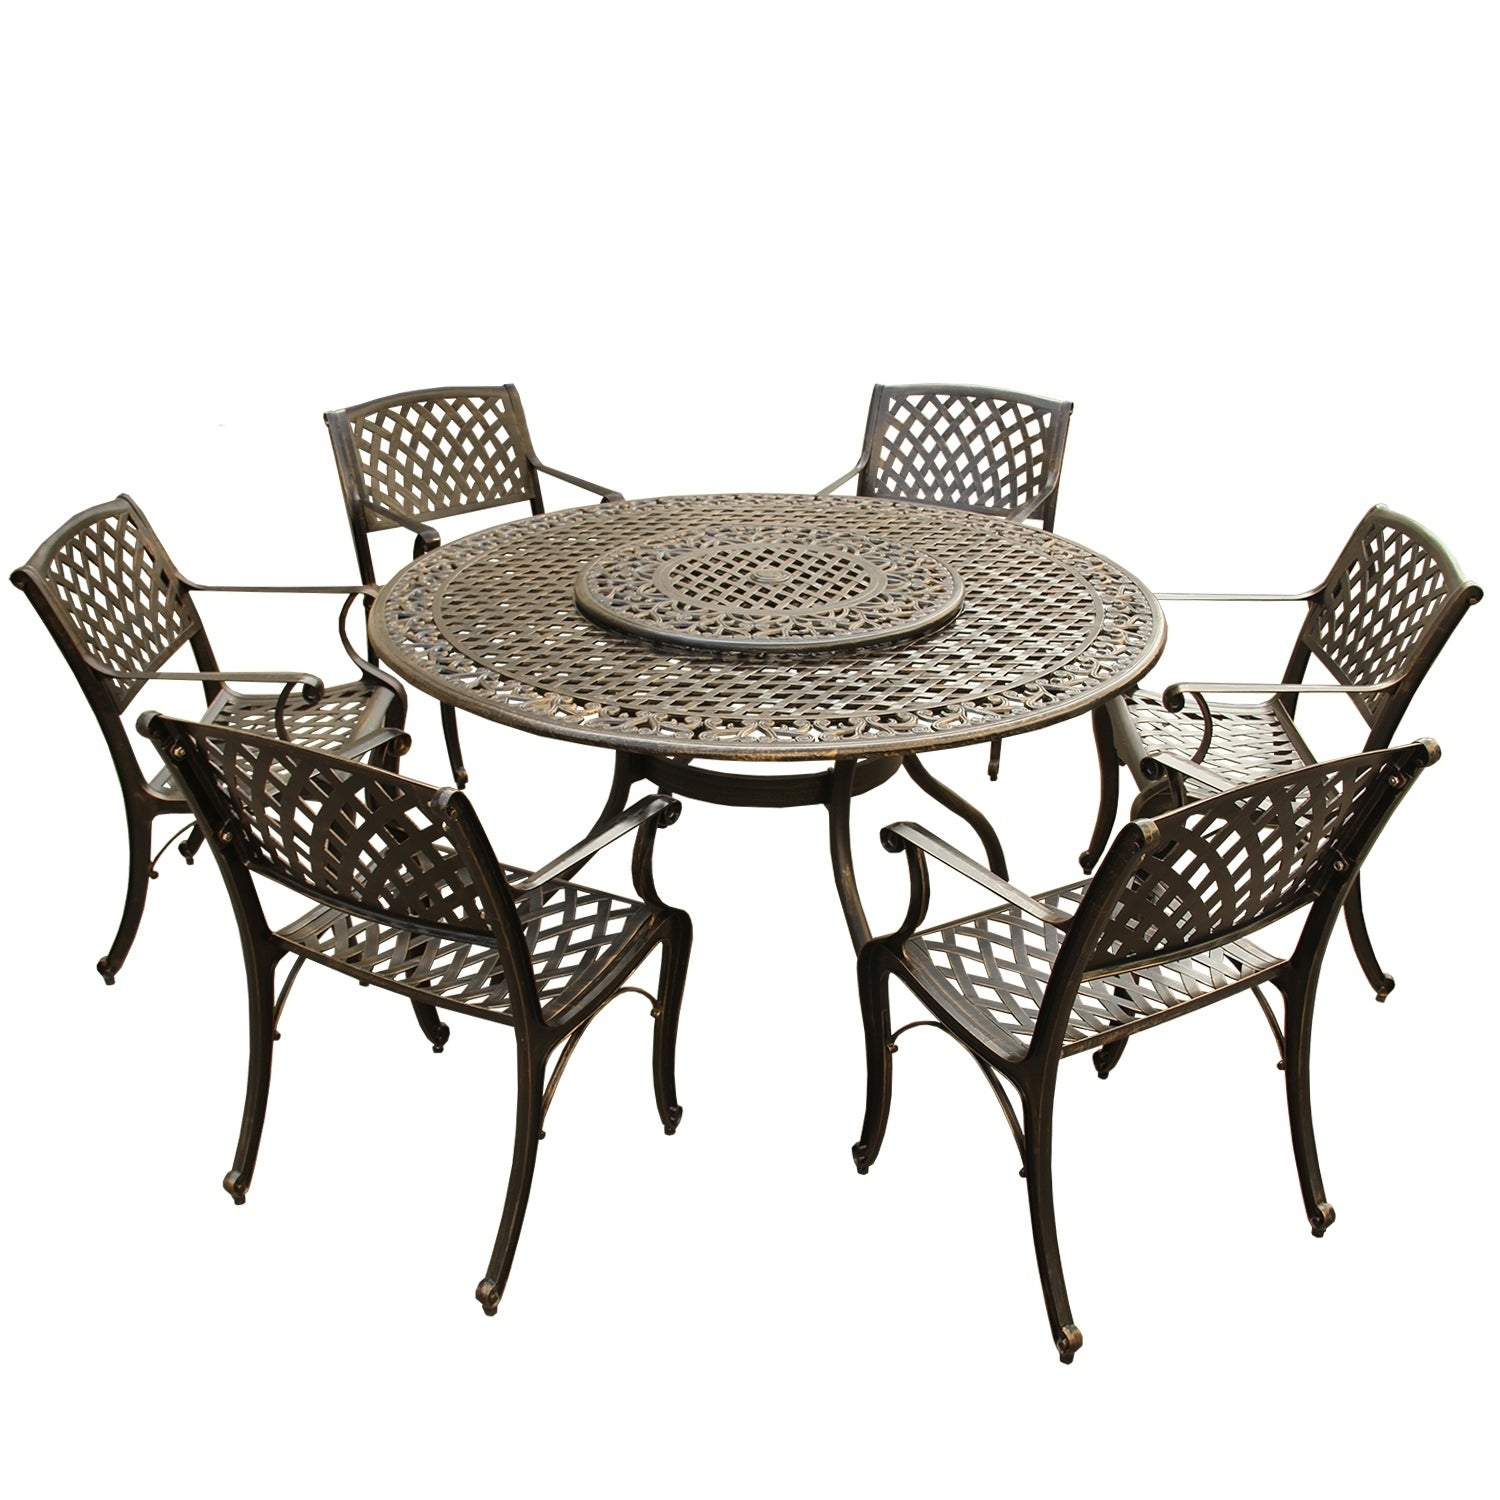 Details About Outdoor Lattice 59 In Round Dining Set With Lazy Susan And Six Chairs